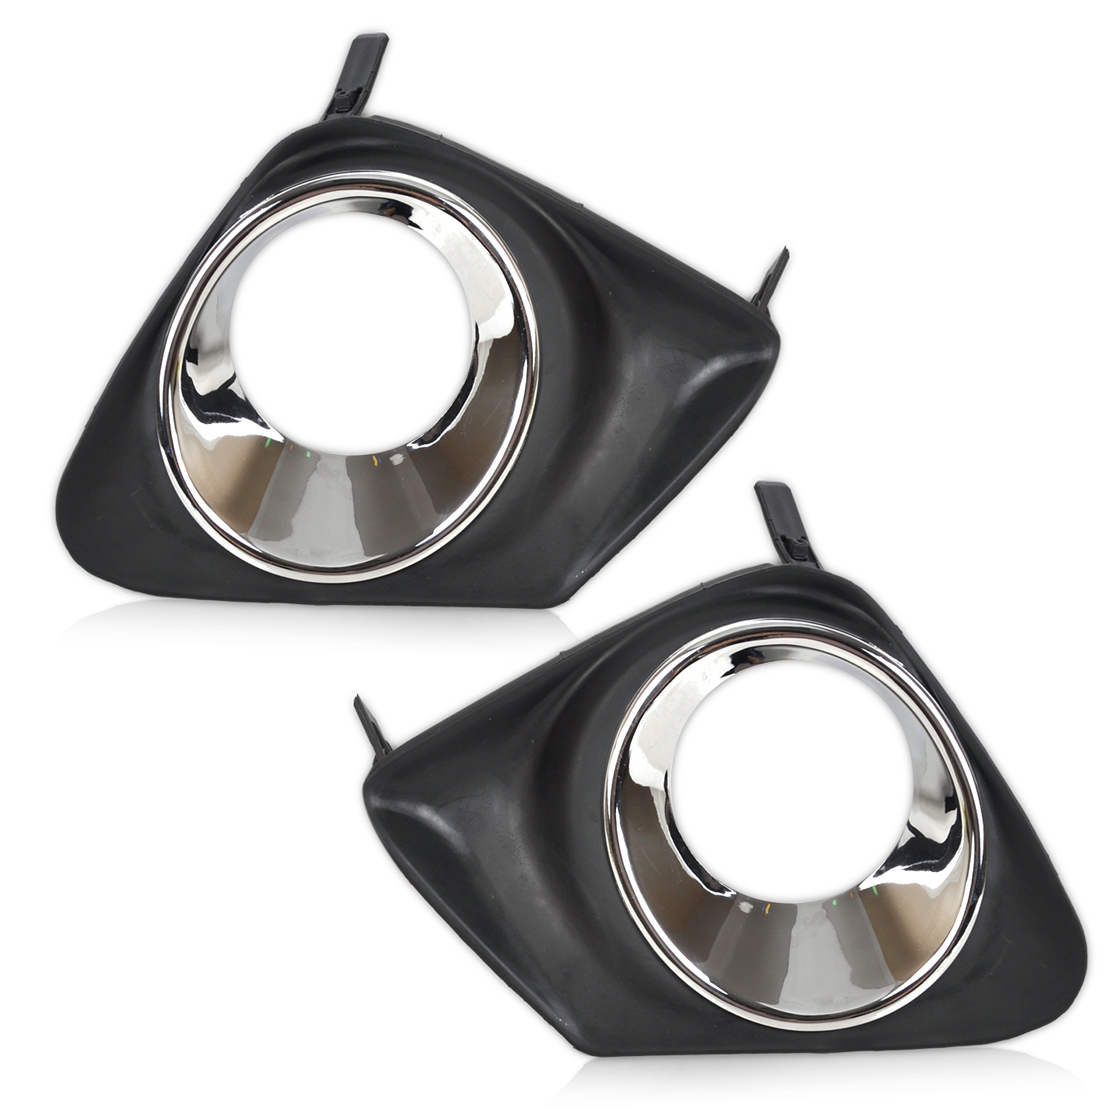 DWCX New 2pcs Car Black Front Right+ Left Bumper Fog Light Lamp Cover Grille Grill Pair fit for Toyota Corolla 2011 2012 2013